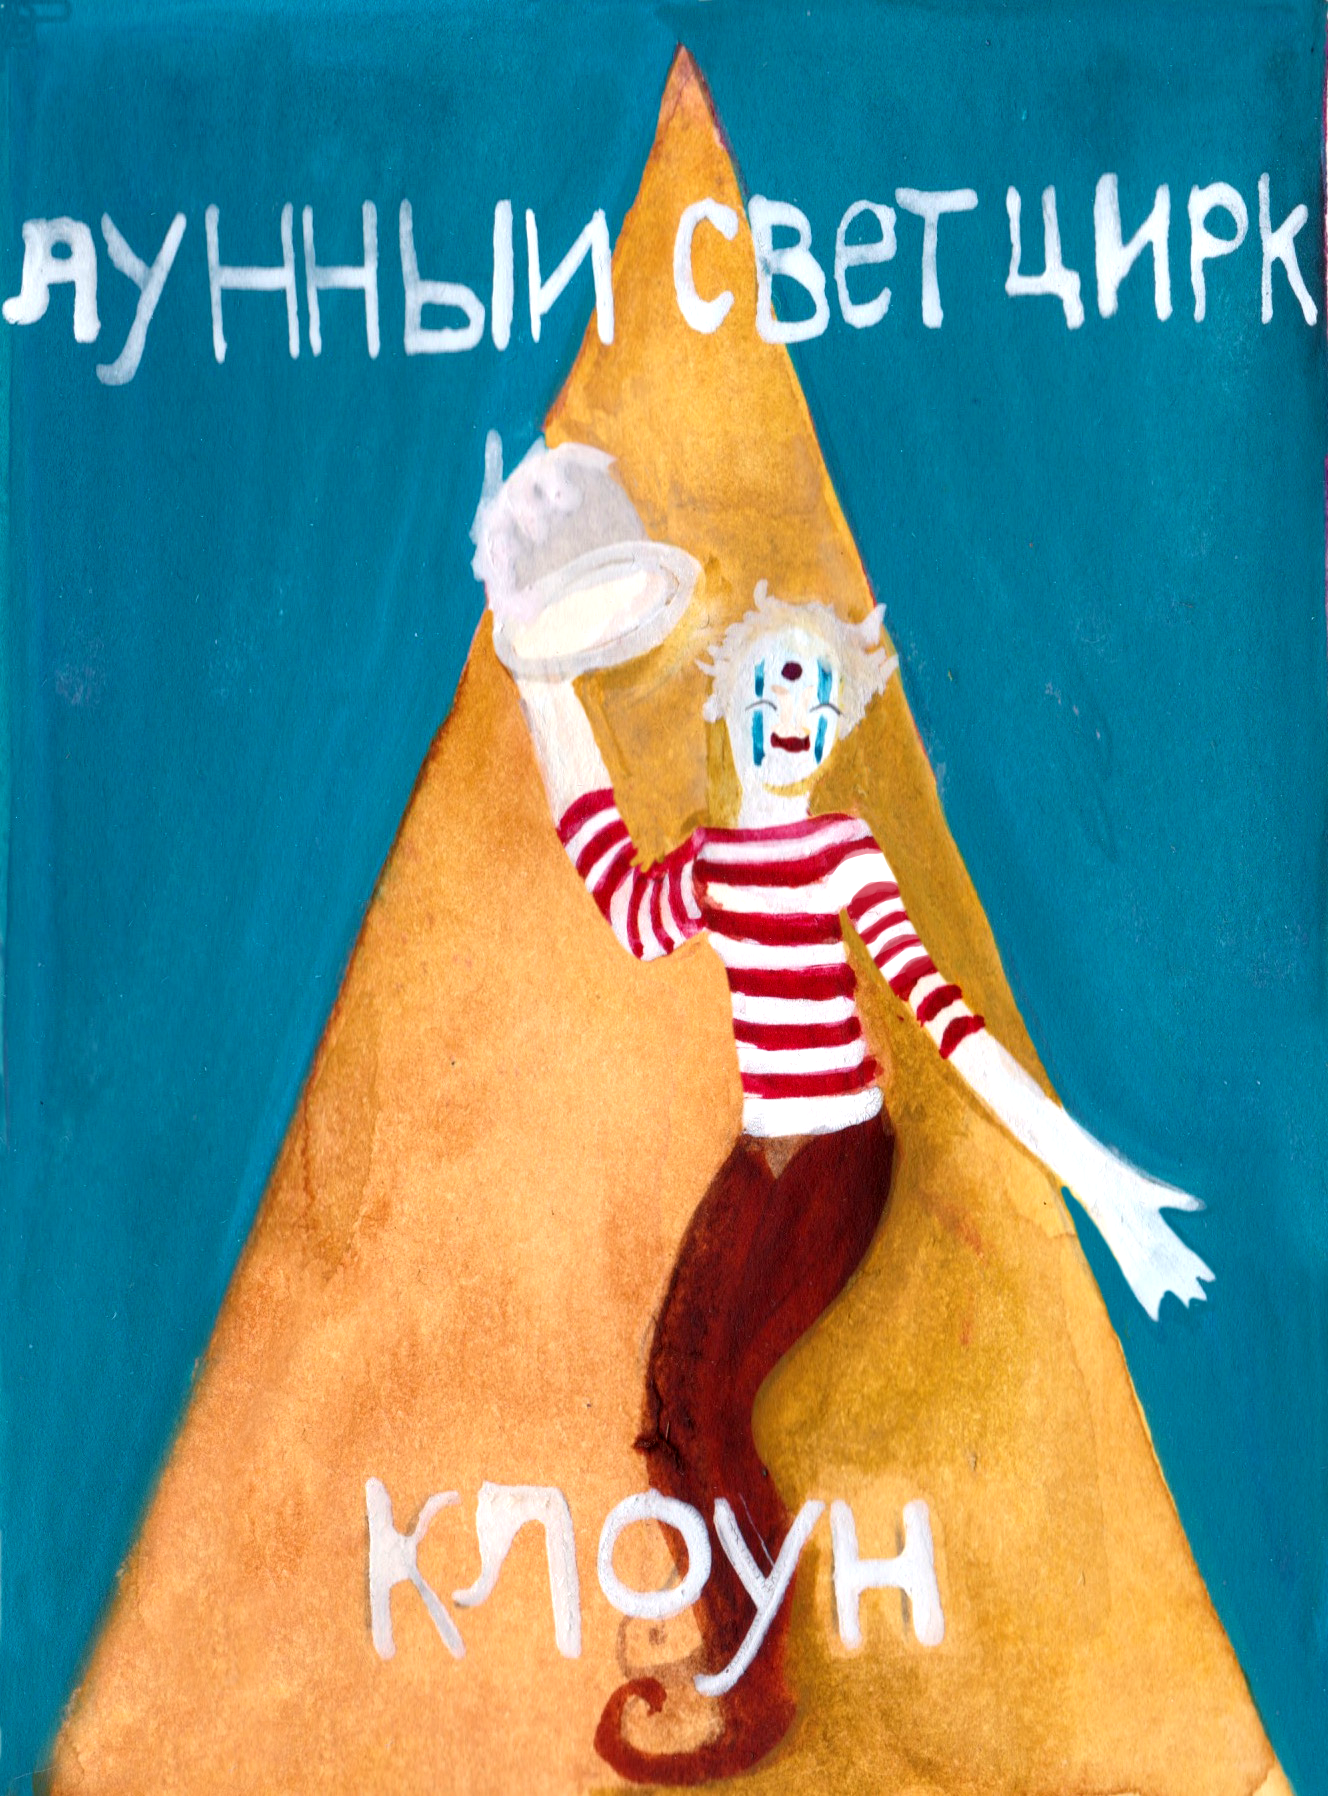 Russian poster for Kazimir's act